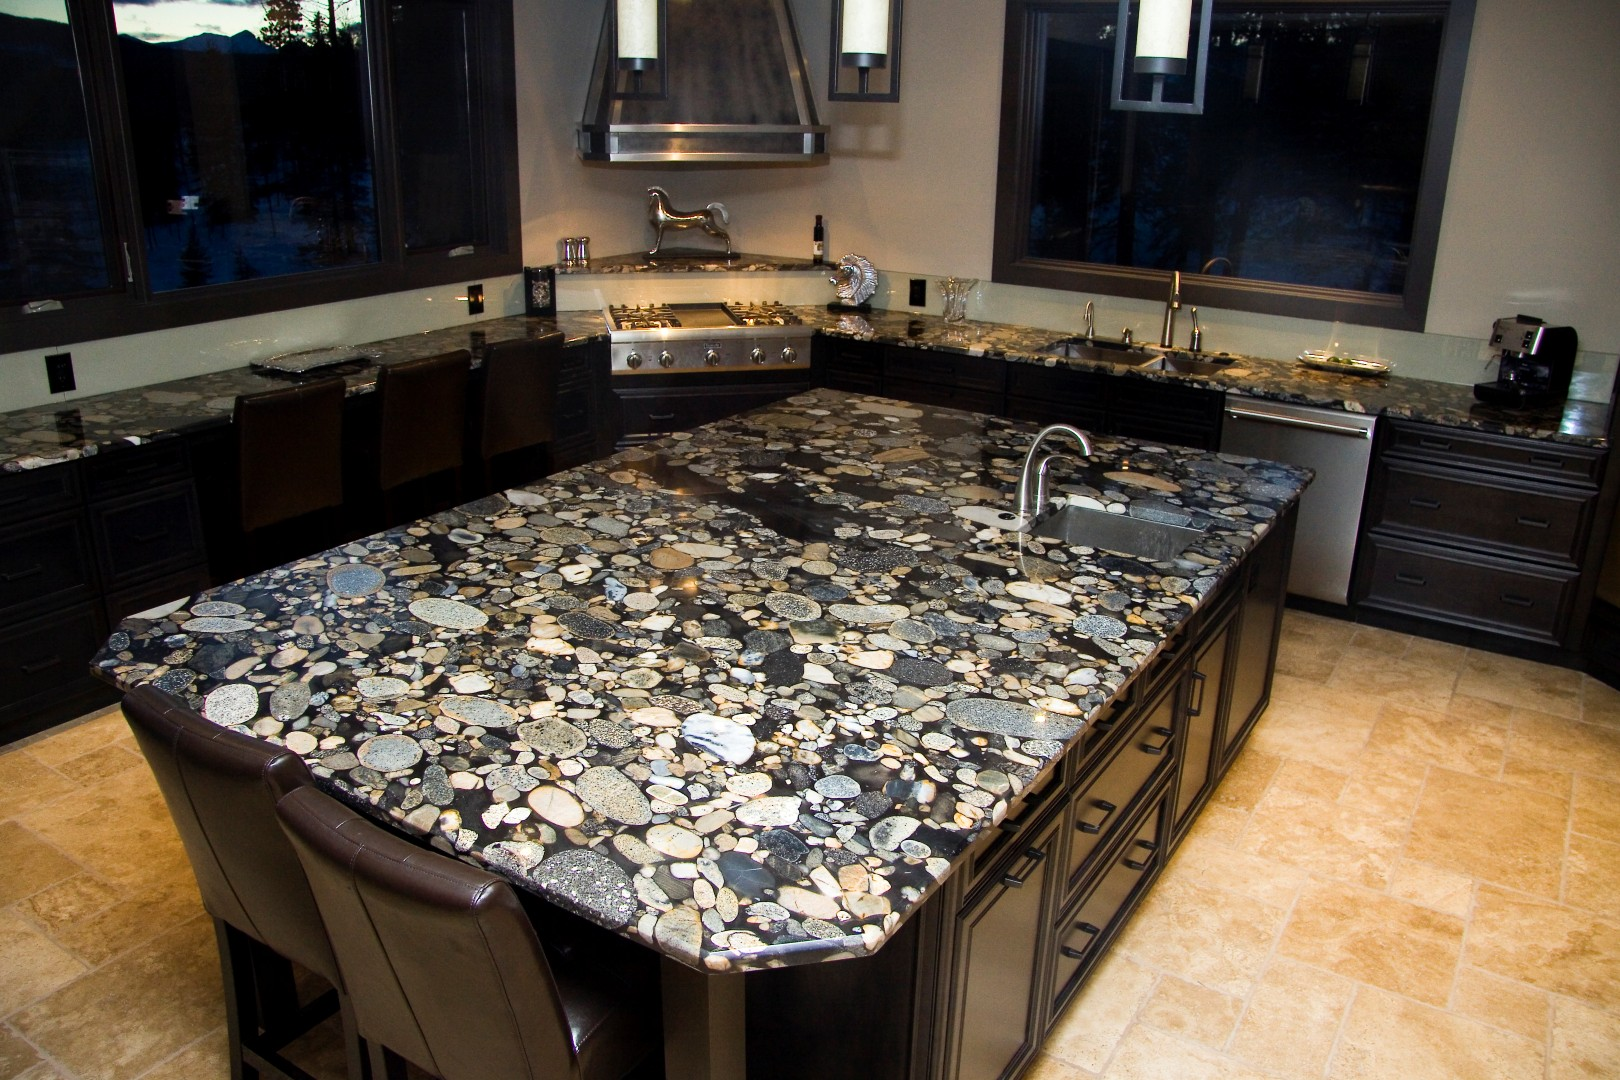 Lowes countertops estimator cool full size of quartz countertops granite kitchen island lowes Quartz countertops cost